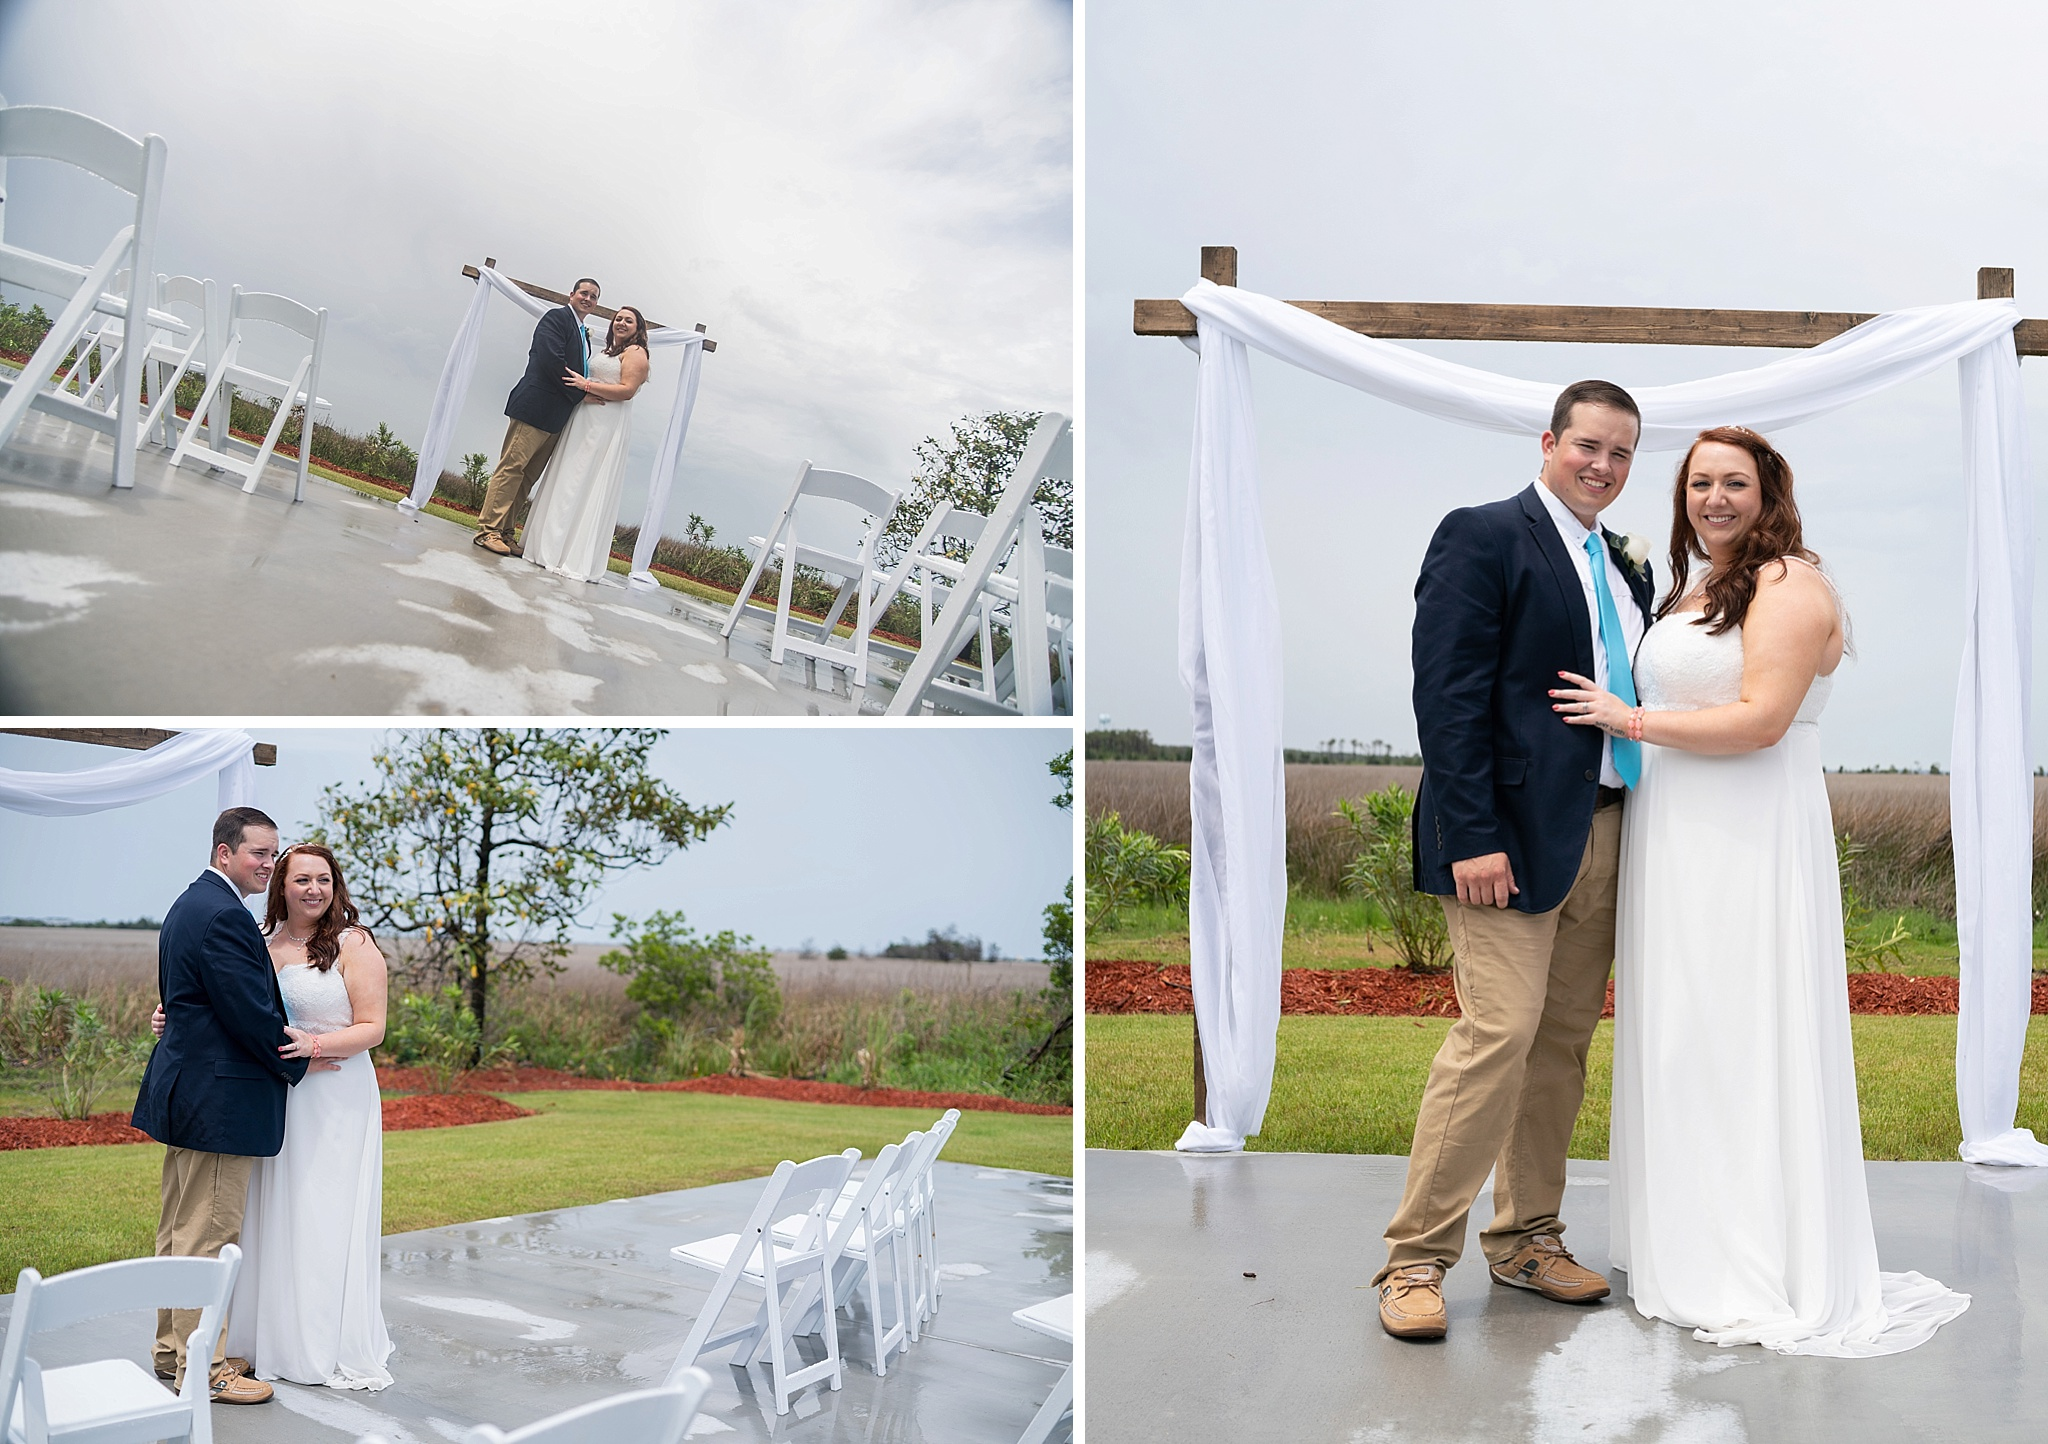 Manteo-NC-Wedding-Photographer-144.jpg